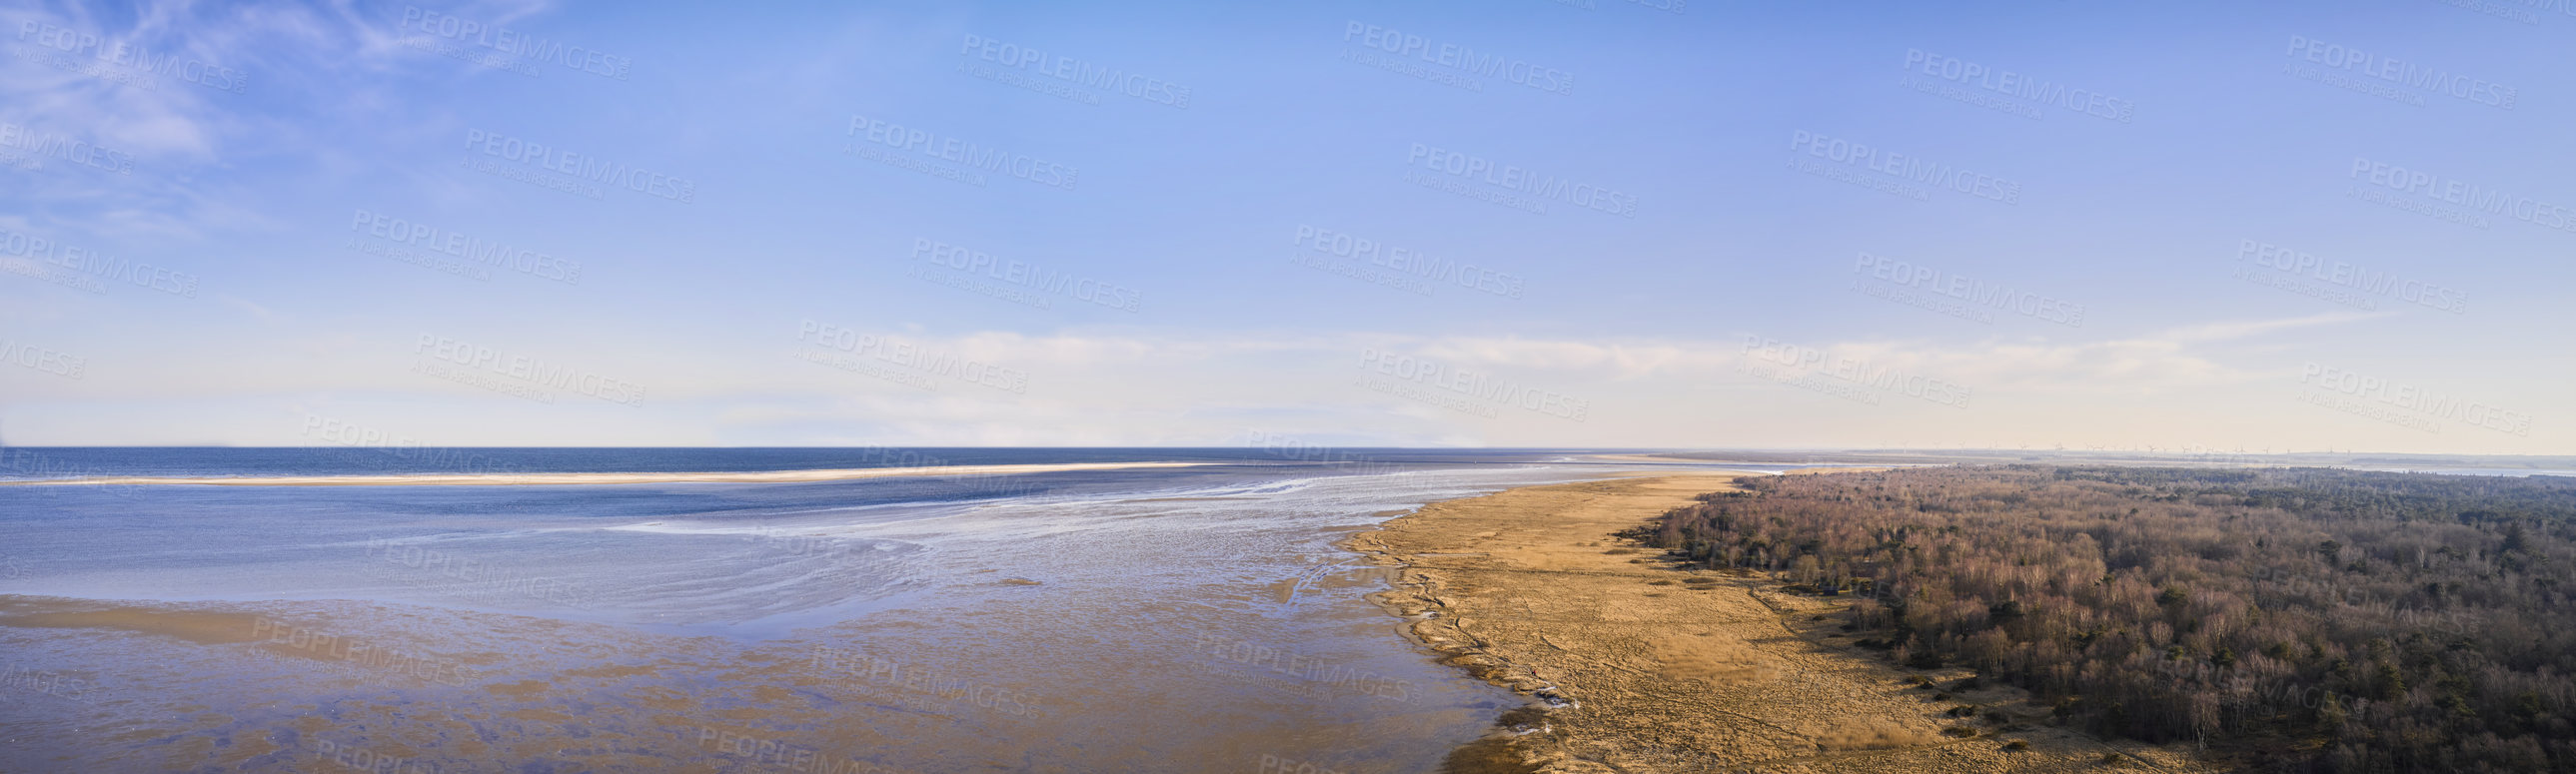 Buy stock photo The east coast of Jutland facing Kattegat